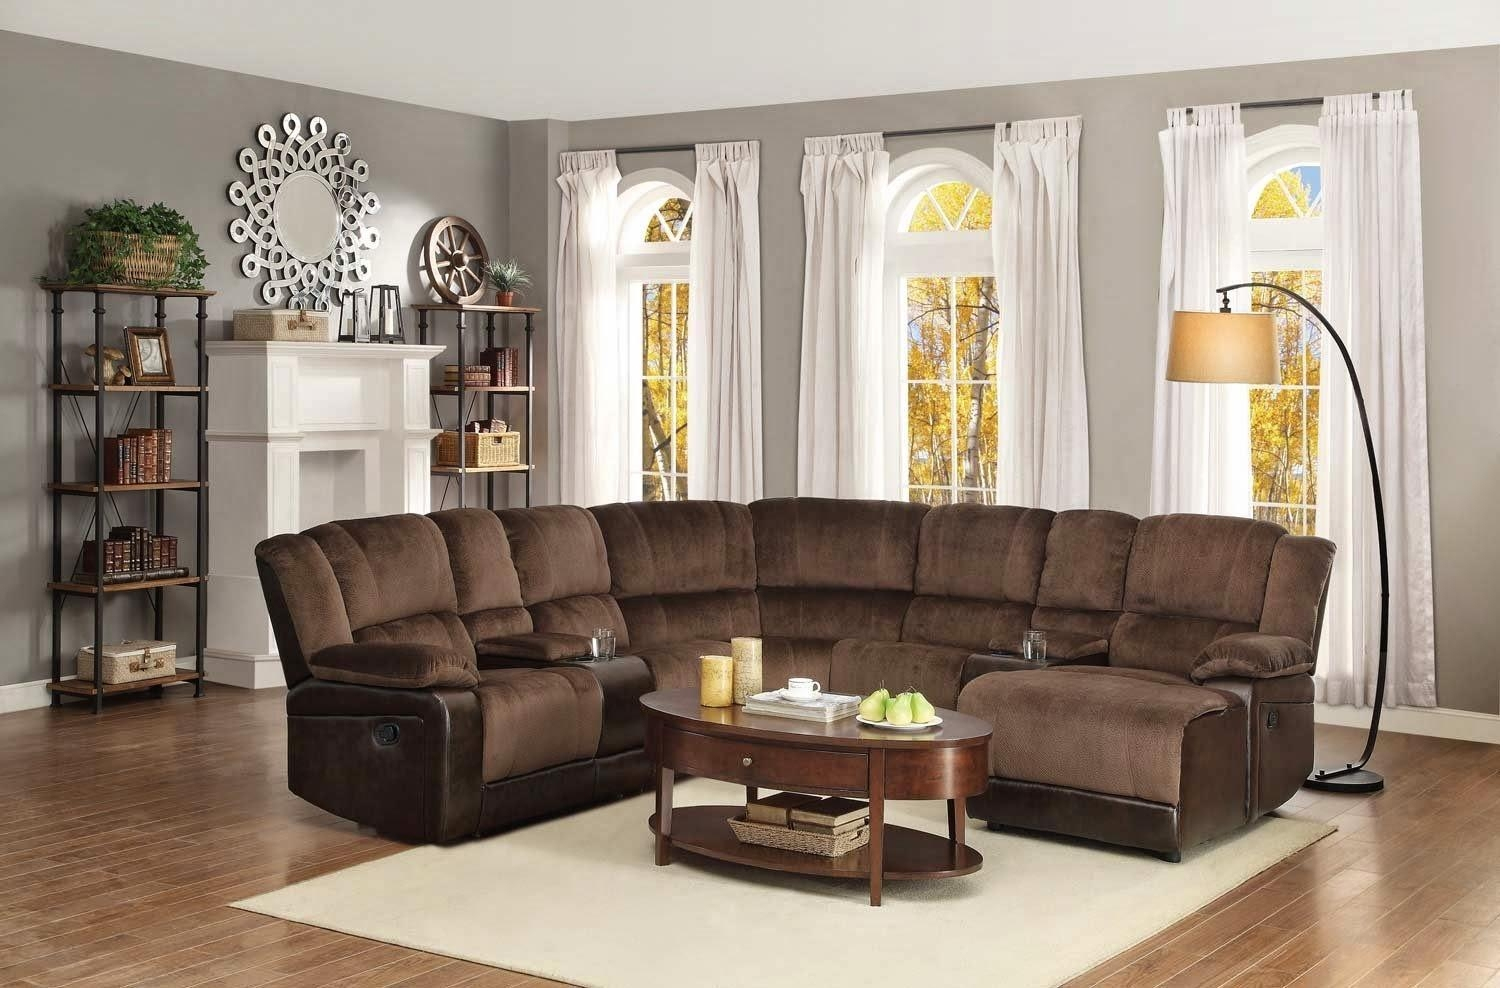 15 Collection Of Curved Sectional Sofa With Recliner Sofa Ideas